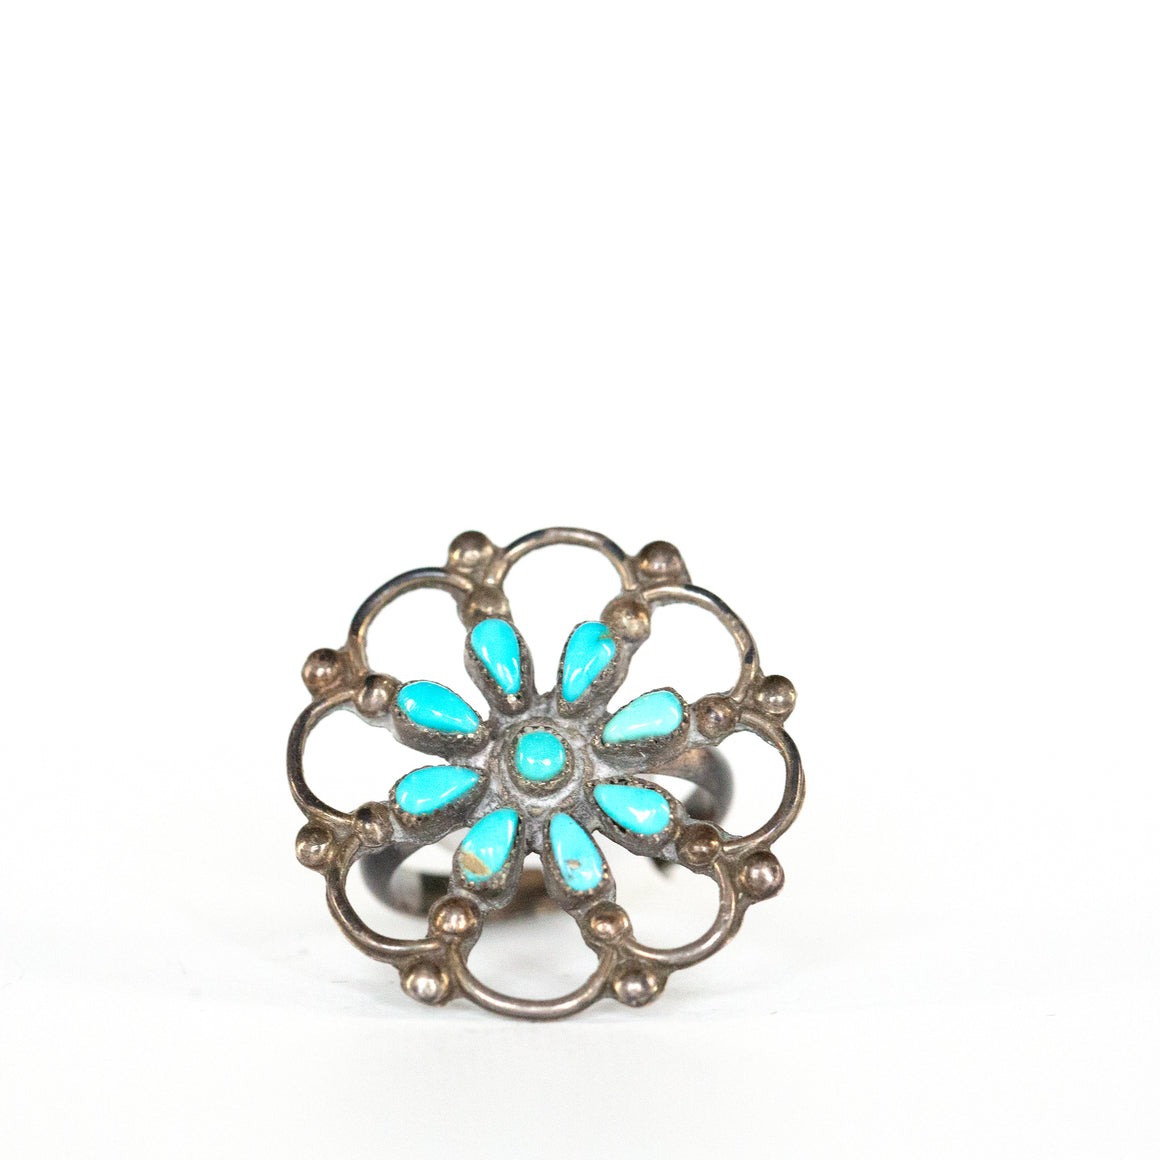 VINTAGE JEWELRY | STERLING TURQUOISE NEEDLEPOINT RING (SIZE 5.5)